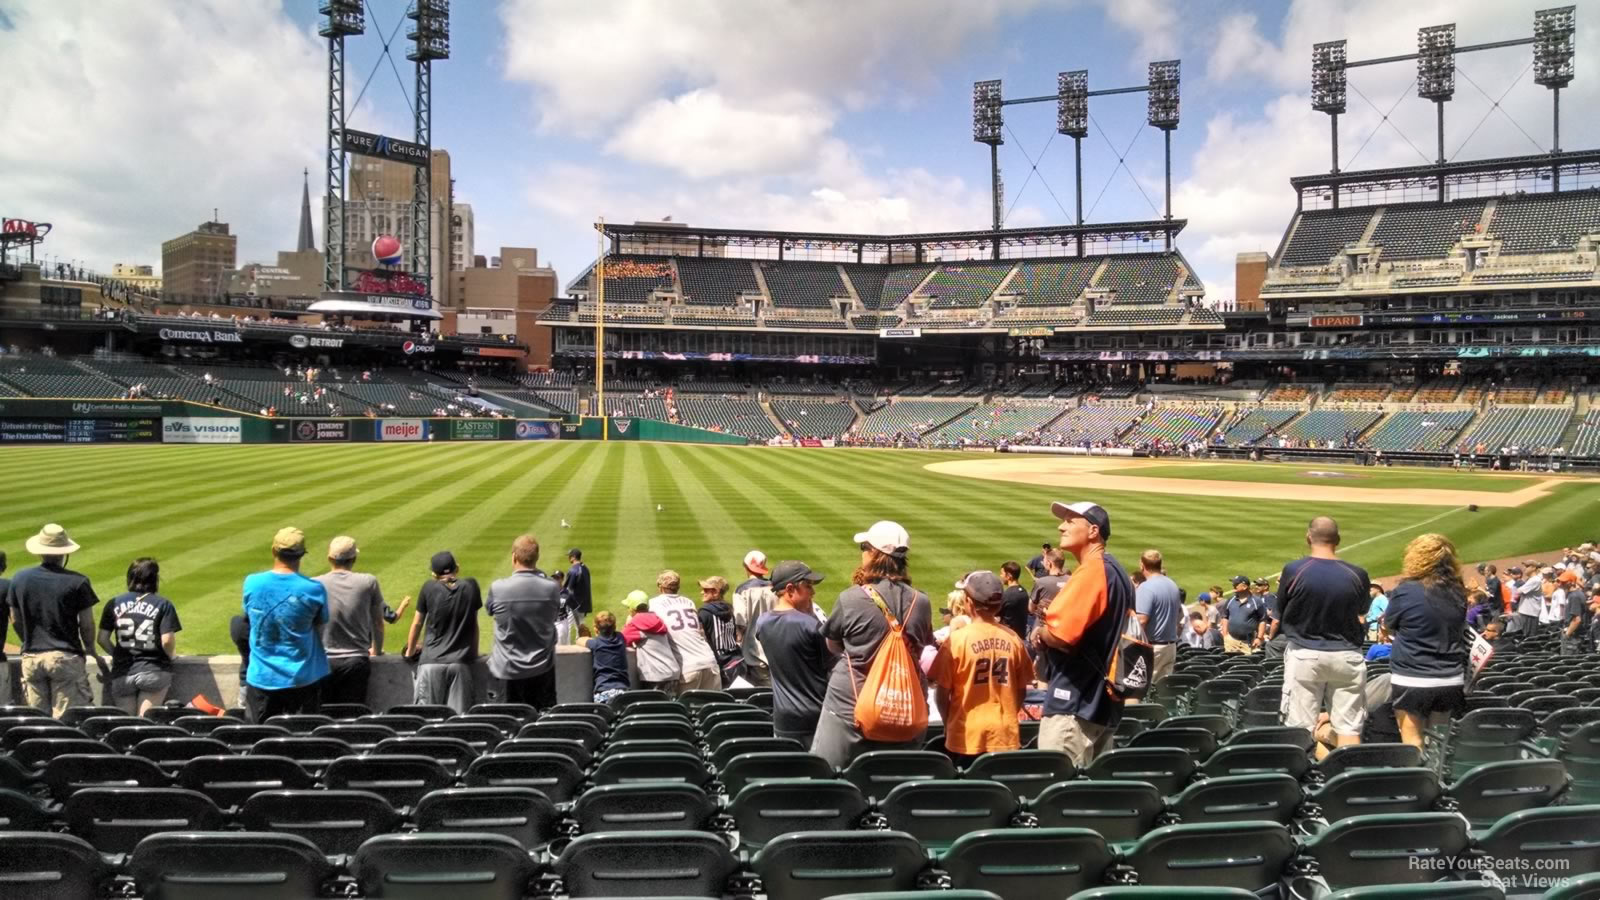 Detroit Tigers Seating Chart With Rows And Seat Numbers ...